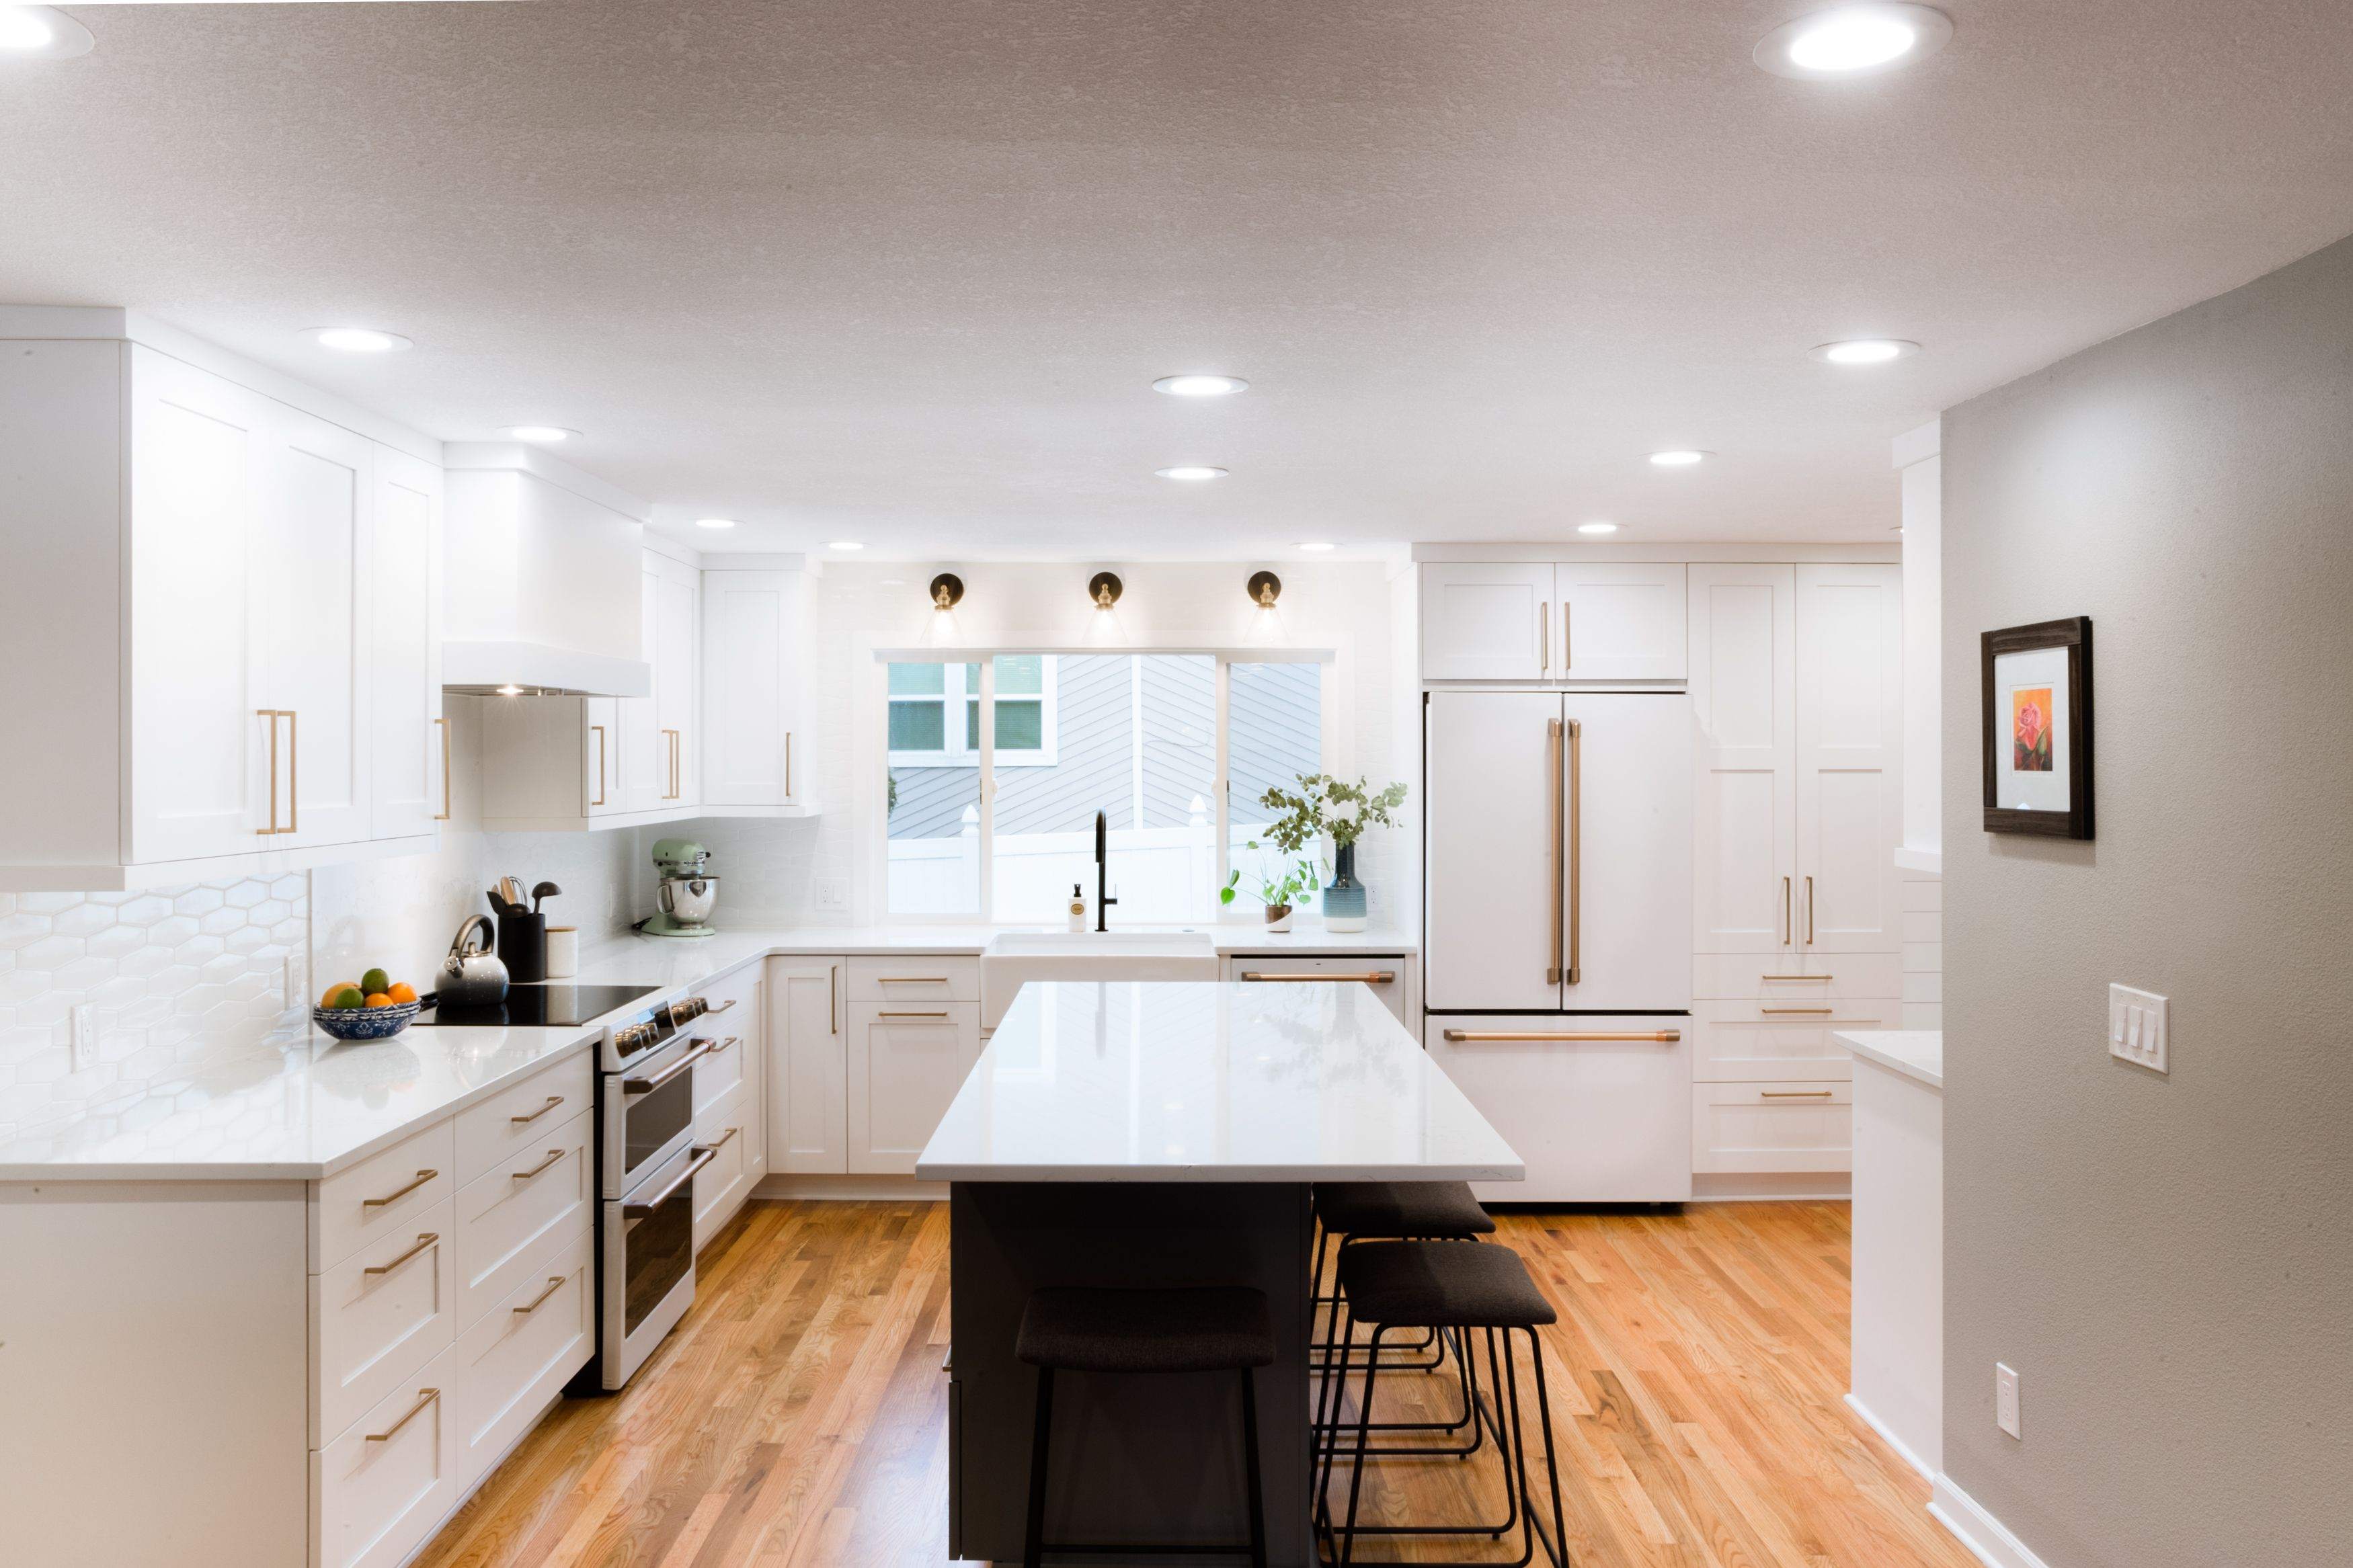 A Kitchen Remodel In Beaverton Oregon Love The White Marble And